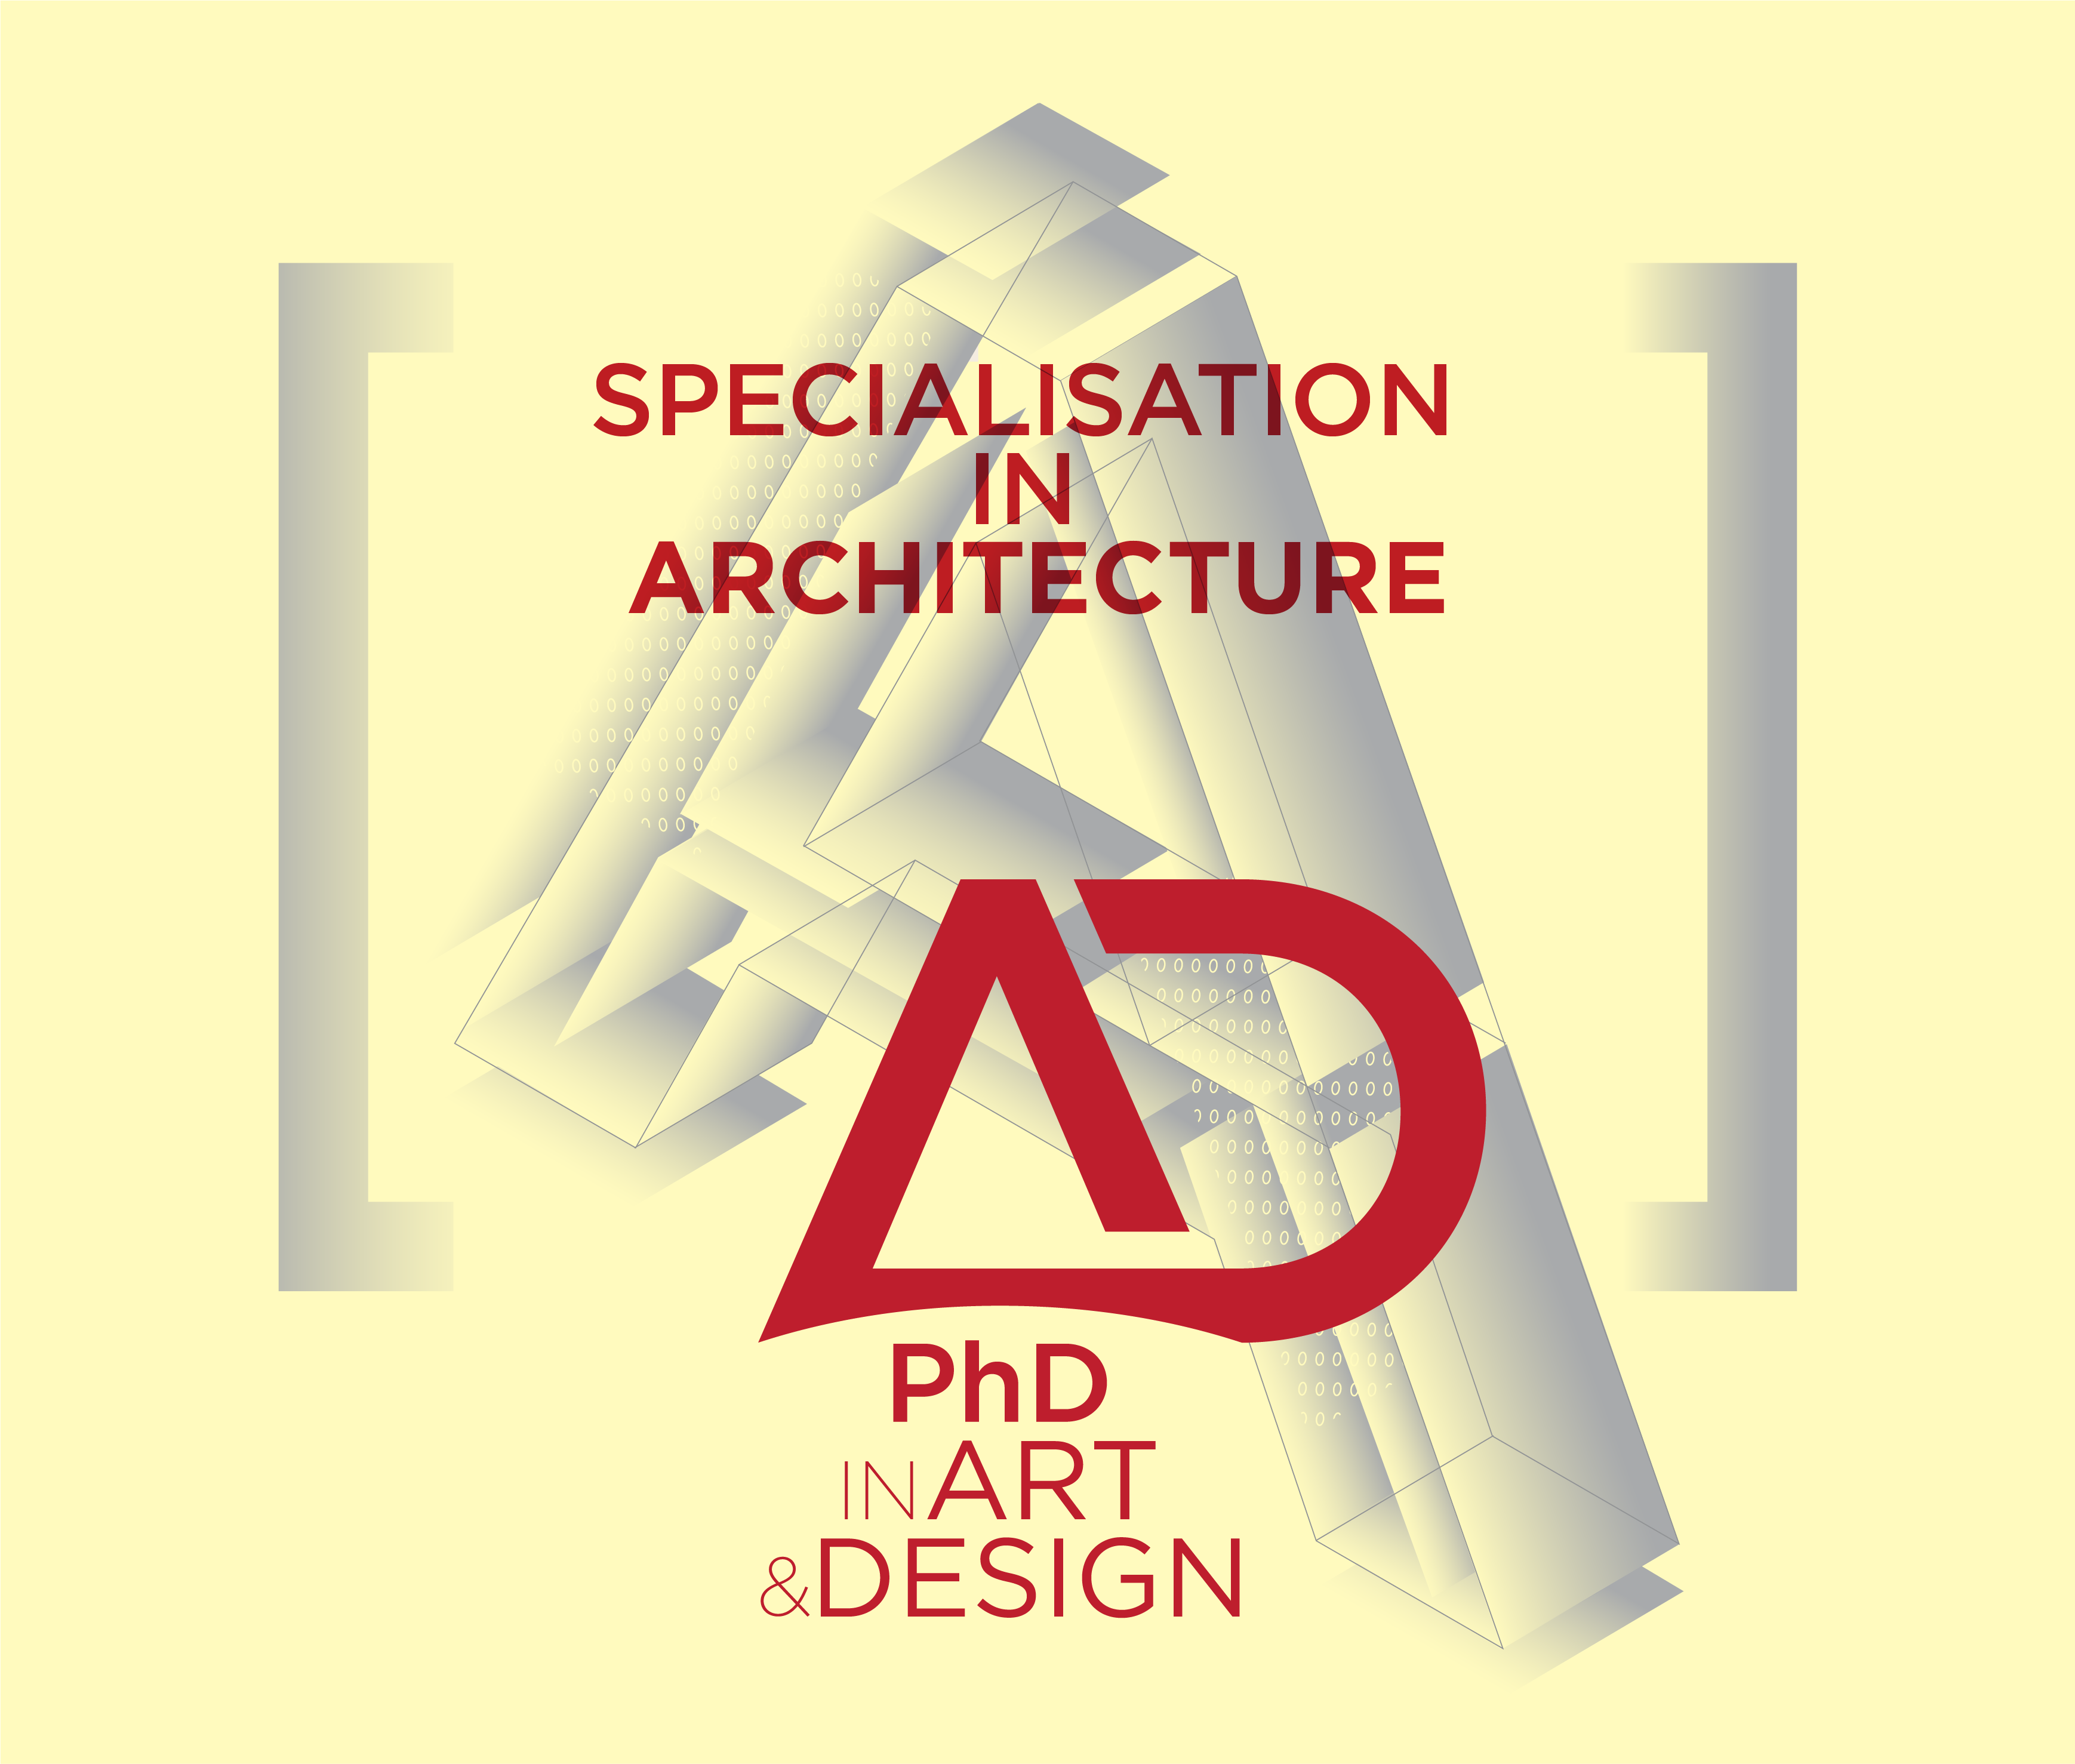 PhD in Art & Design (with a specialisation in Architecture)